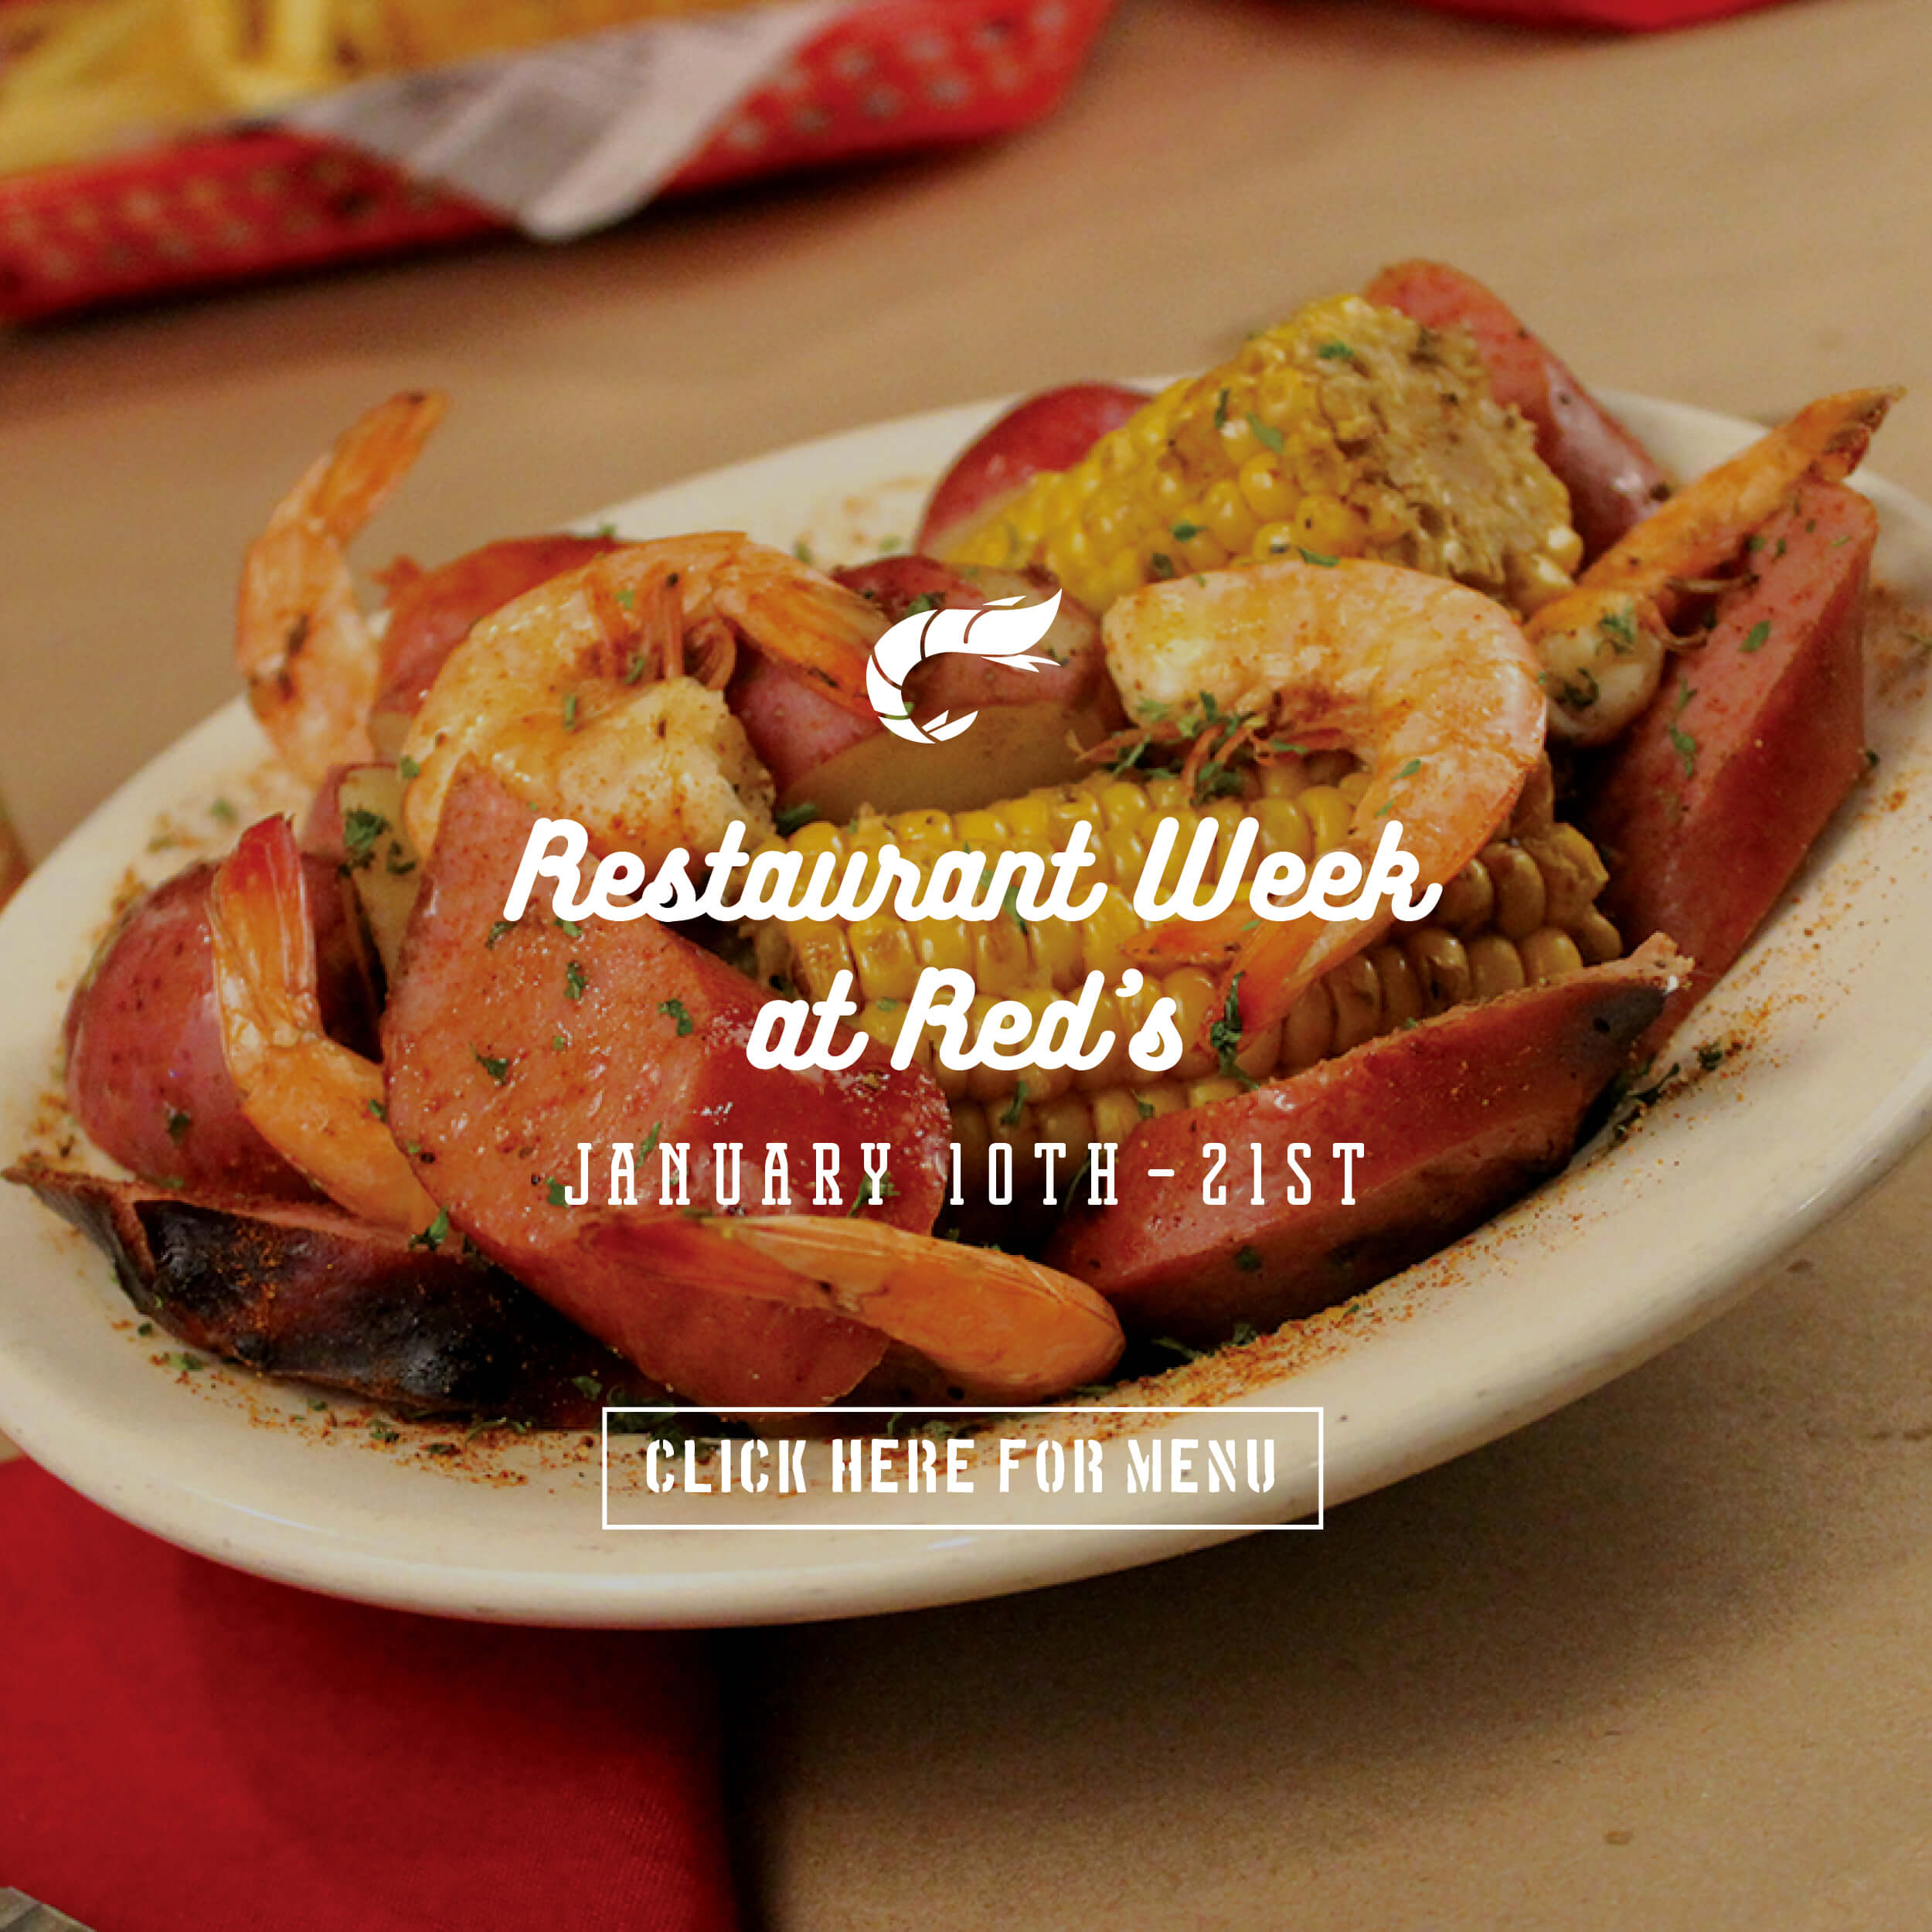 Charleston Restaurant Week 2018 Red's Ice House